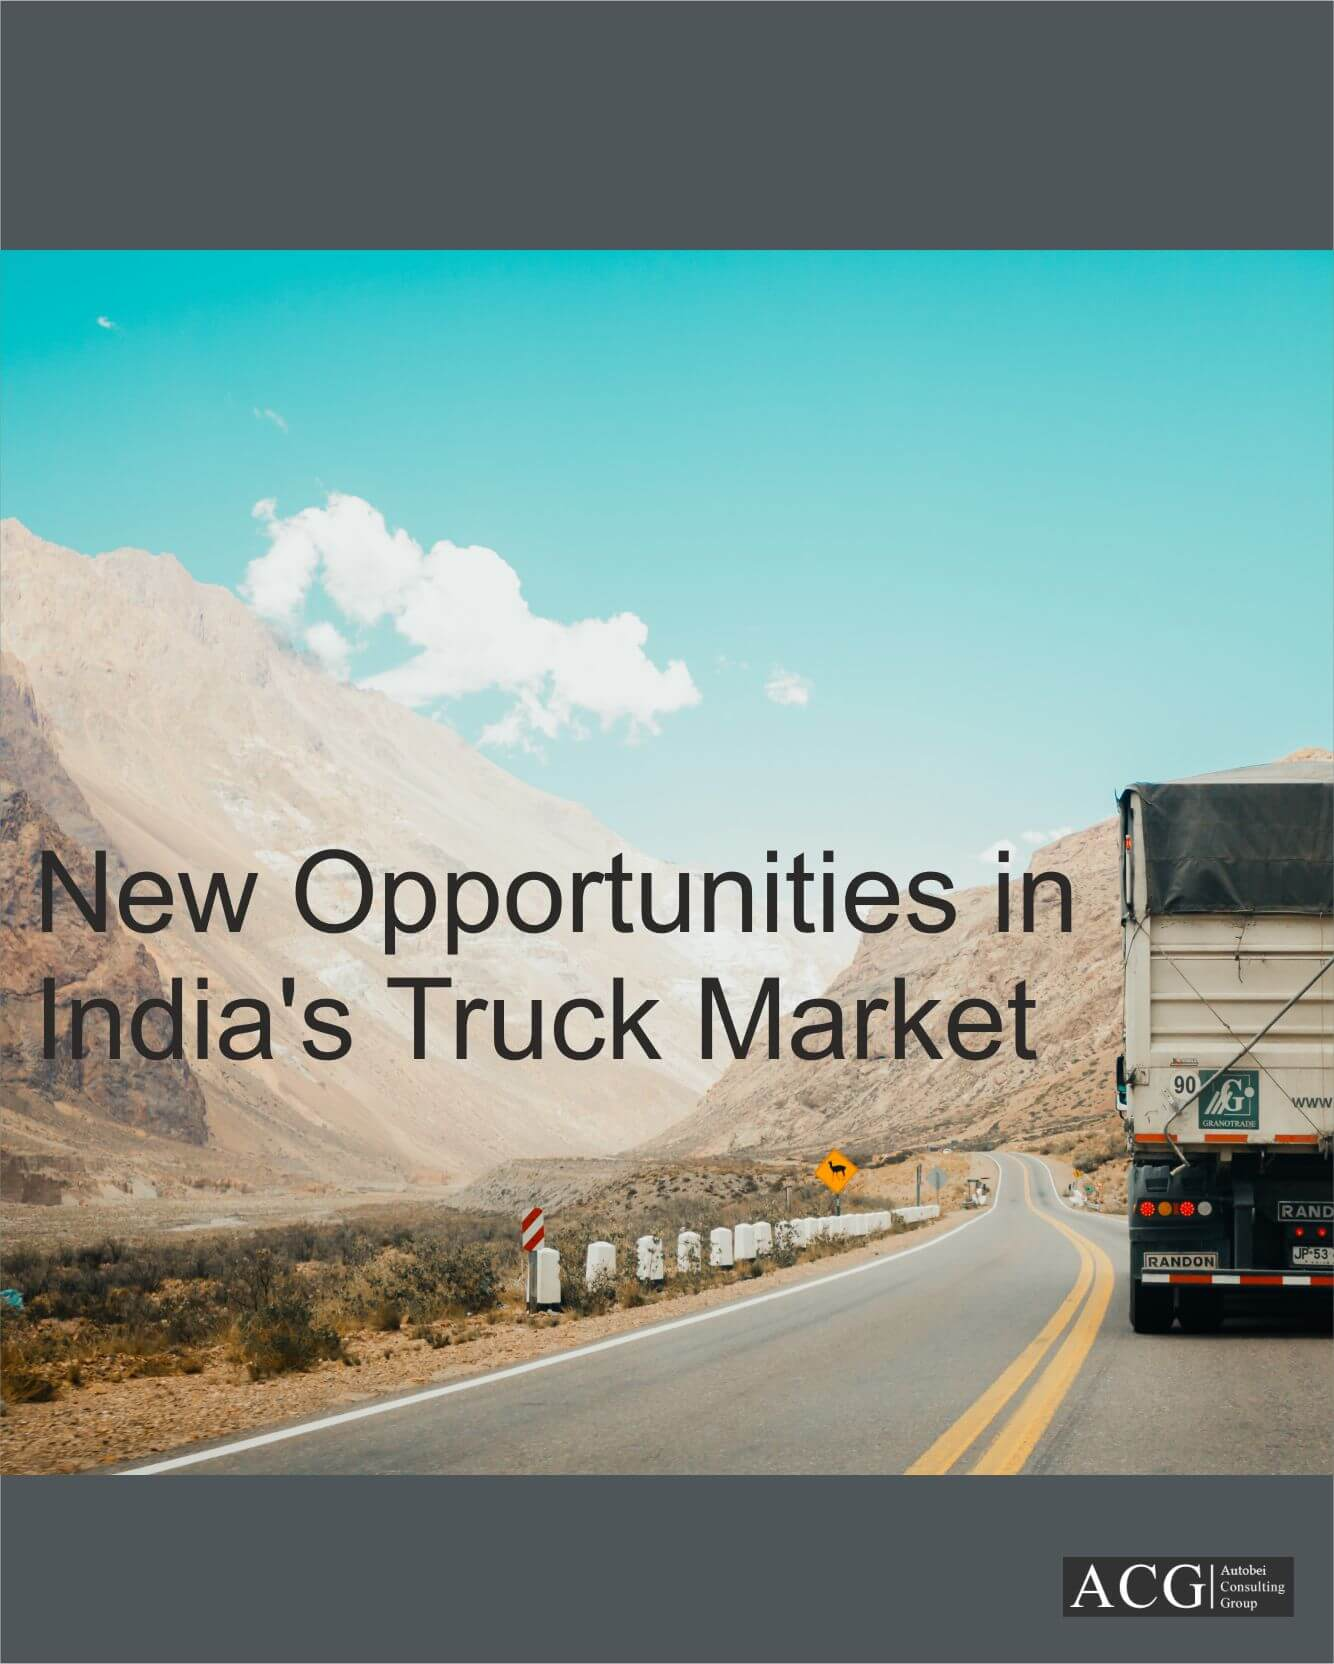 New Opportunities in India's Truck Market